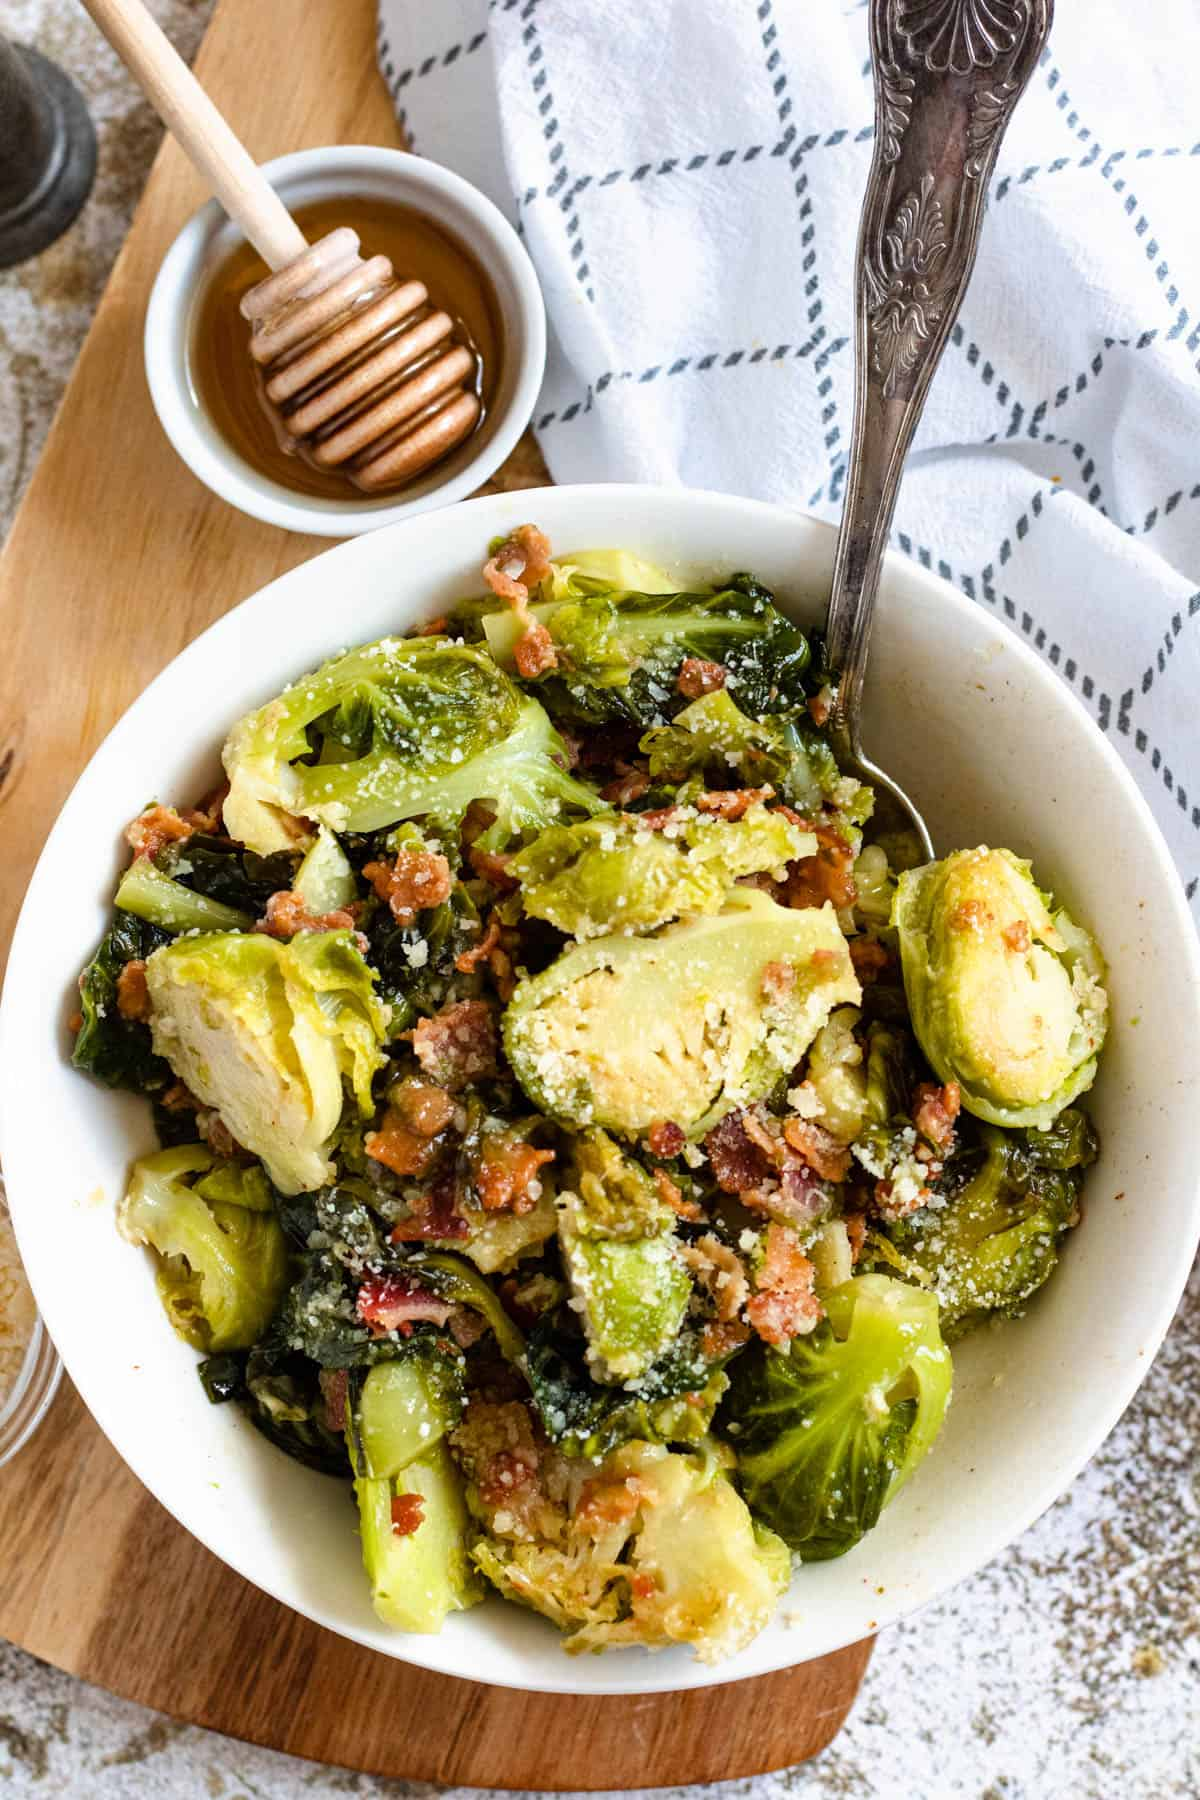 Bowl of Brussels sprouts with bacon and honey